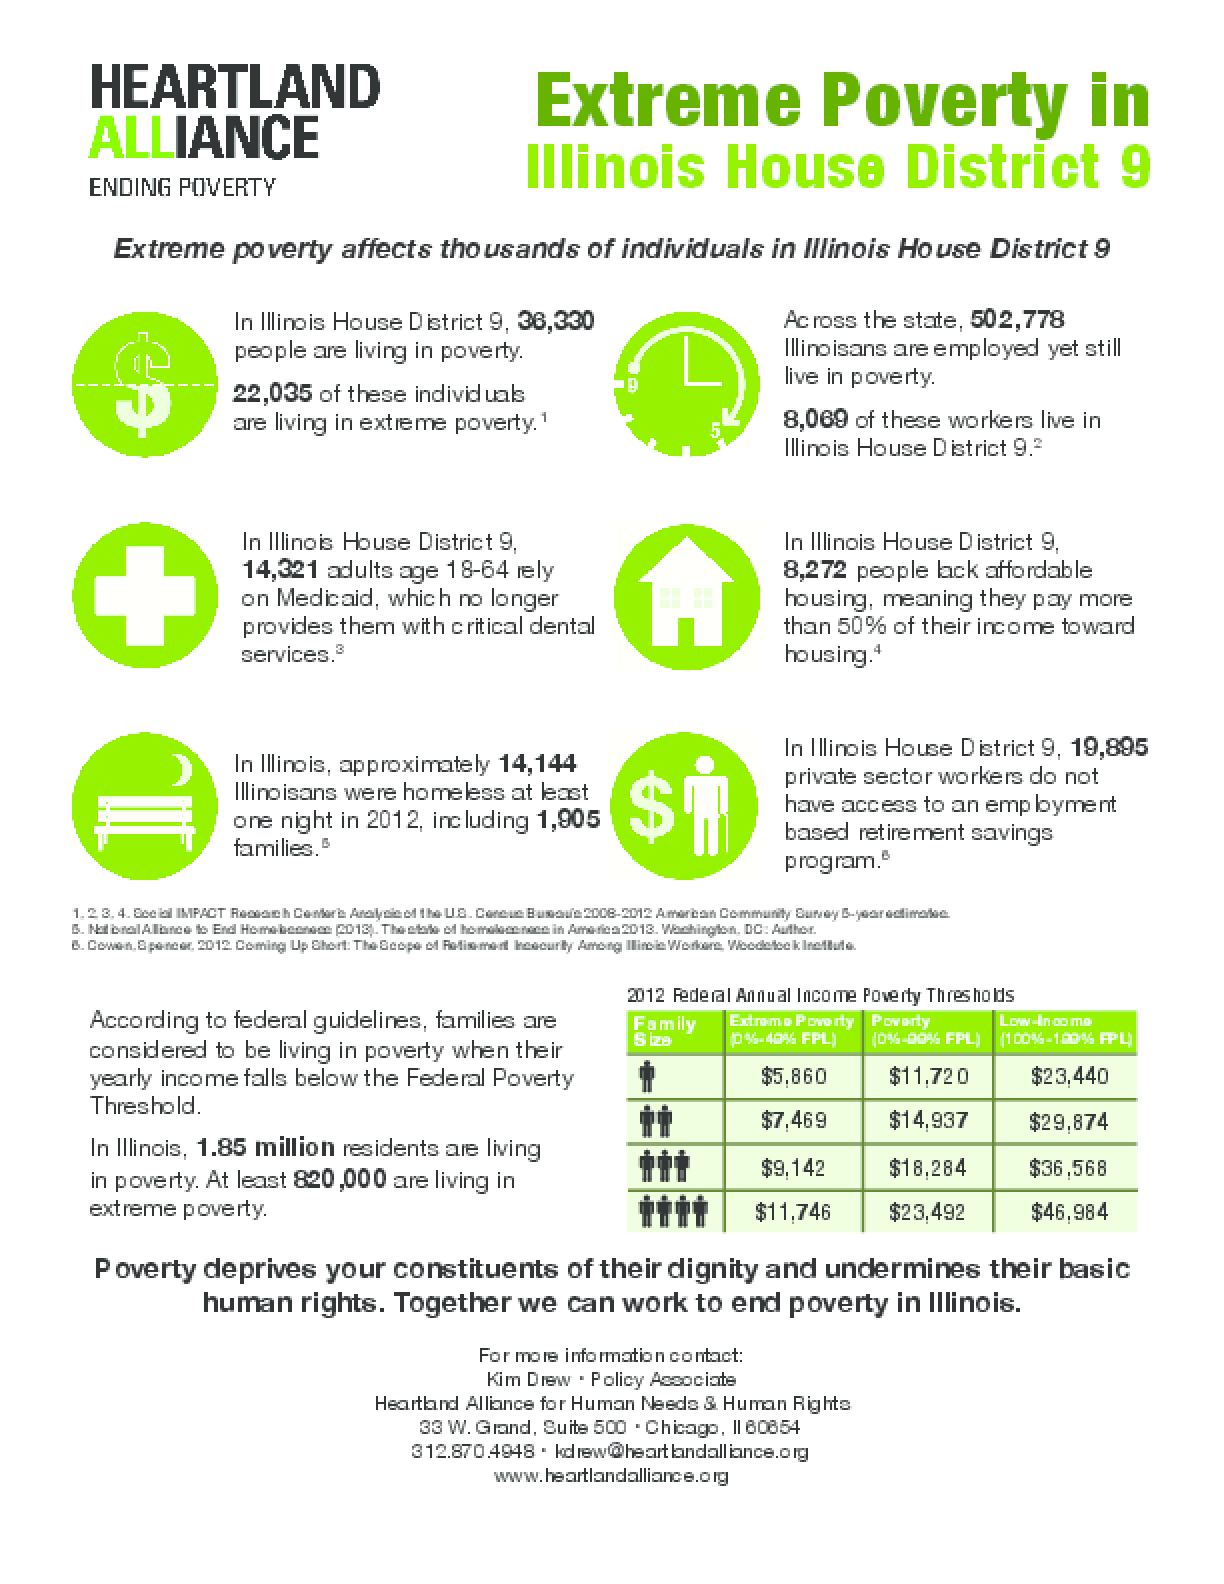 Poverty Fact Sheet for Illinois House District 9